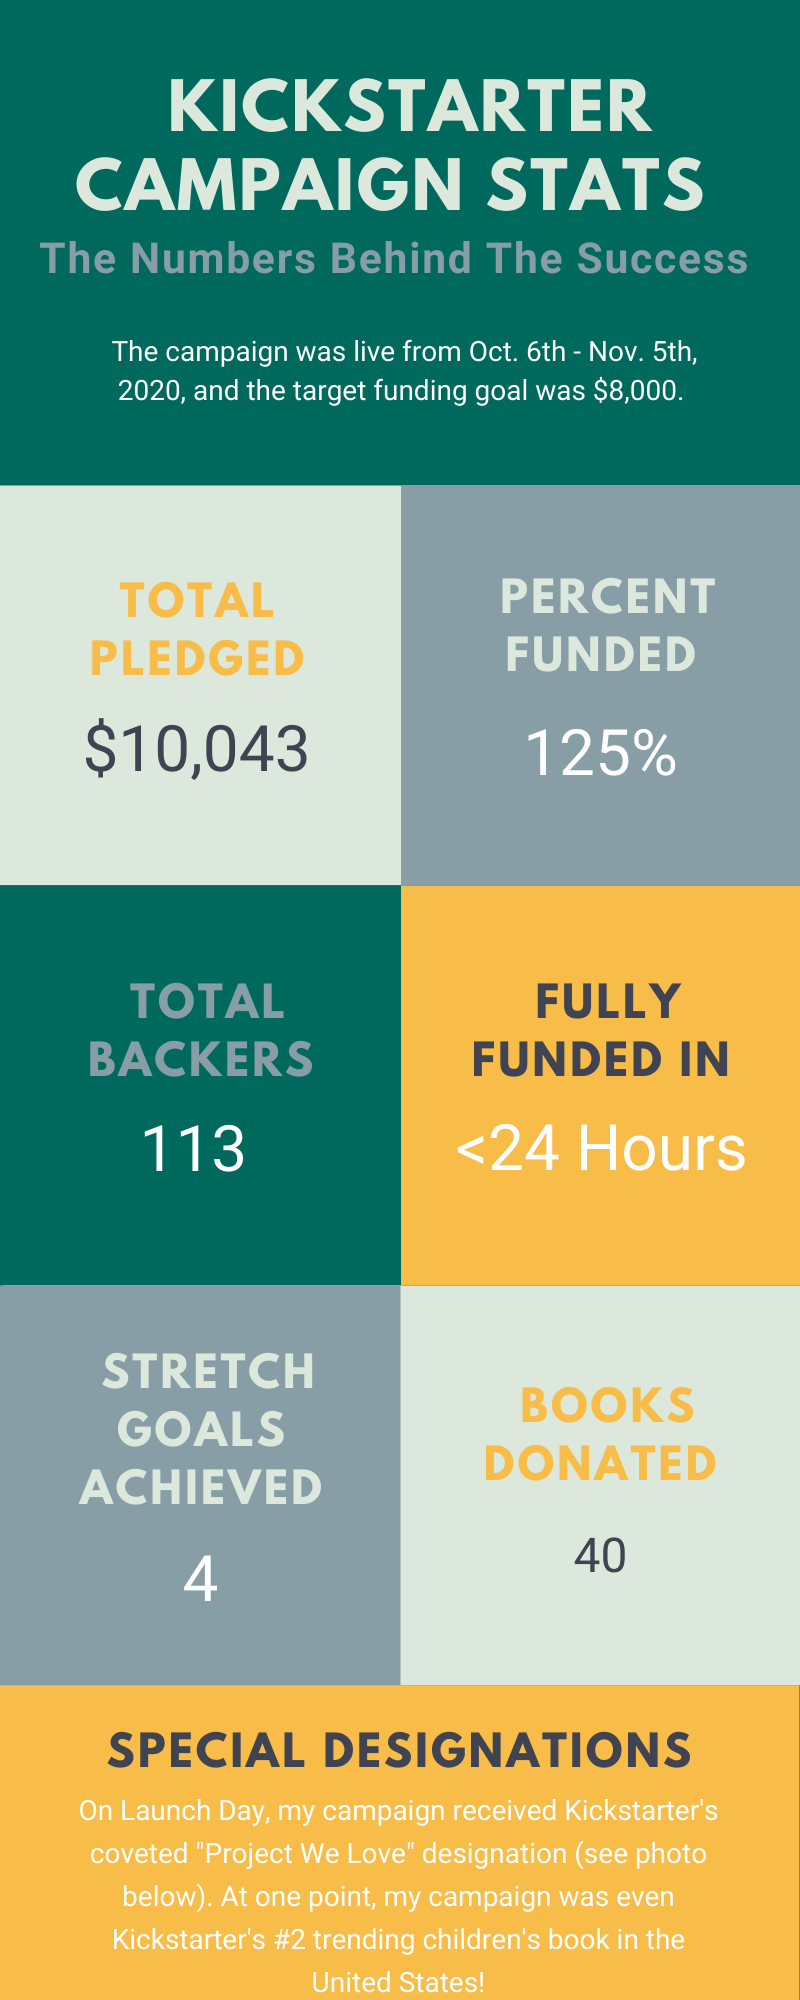 The Train Rolls On Kickstarter Campaign Stats